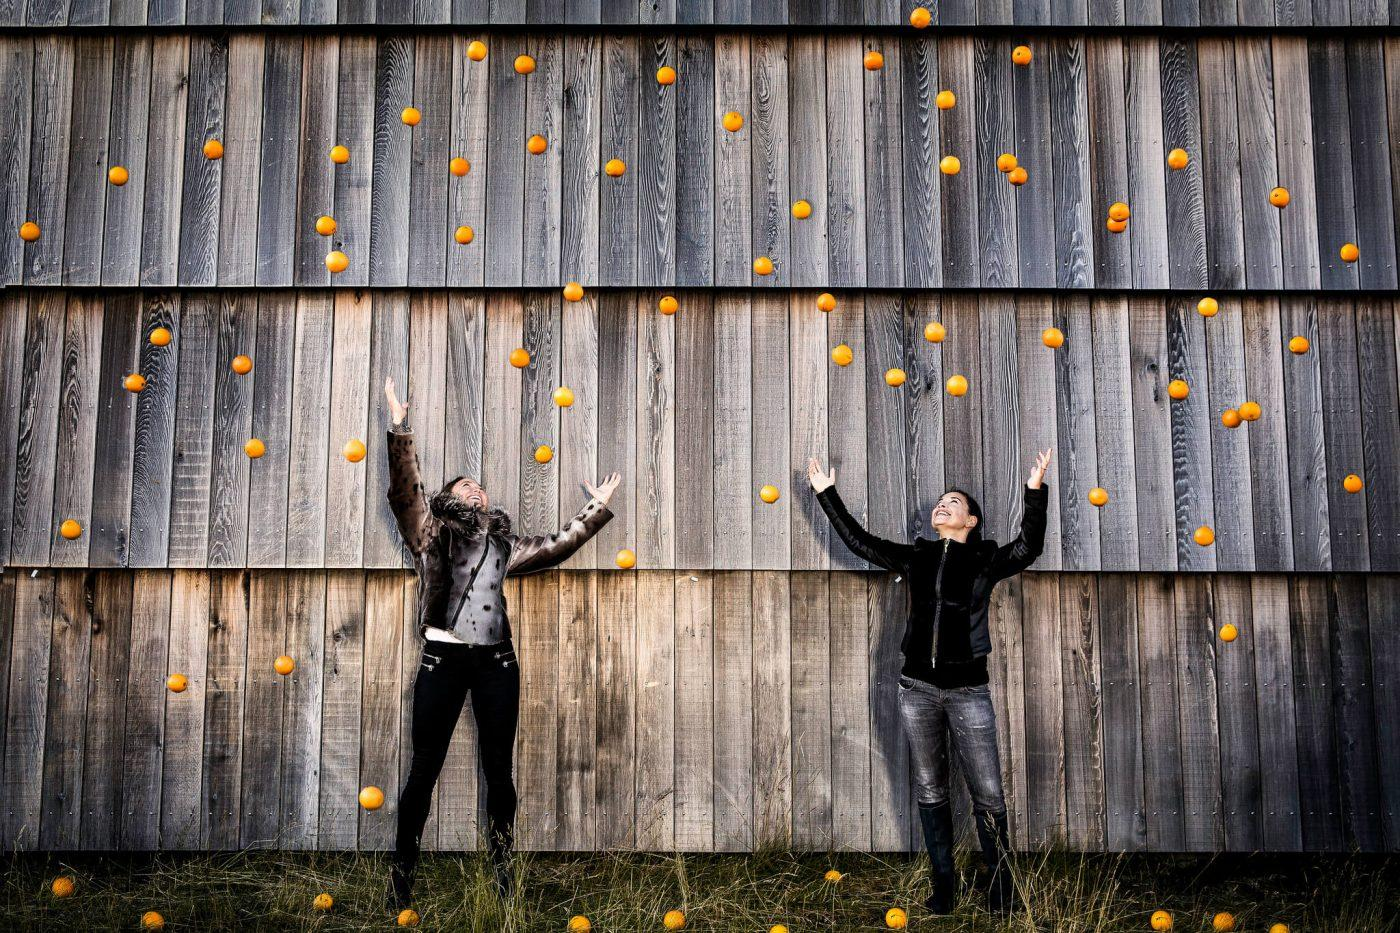 Two women with oranges at University of Greenland, by Mads Pihl